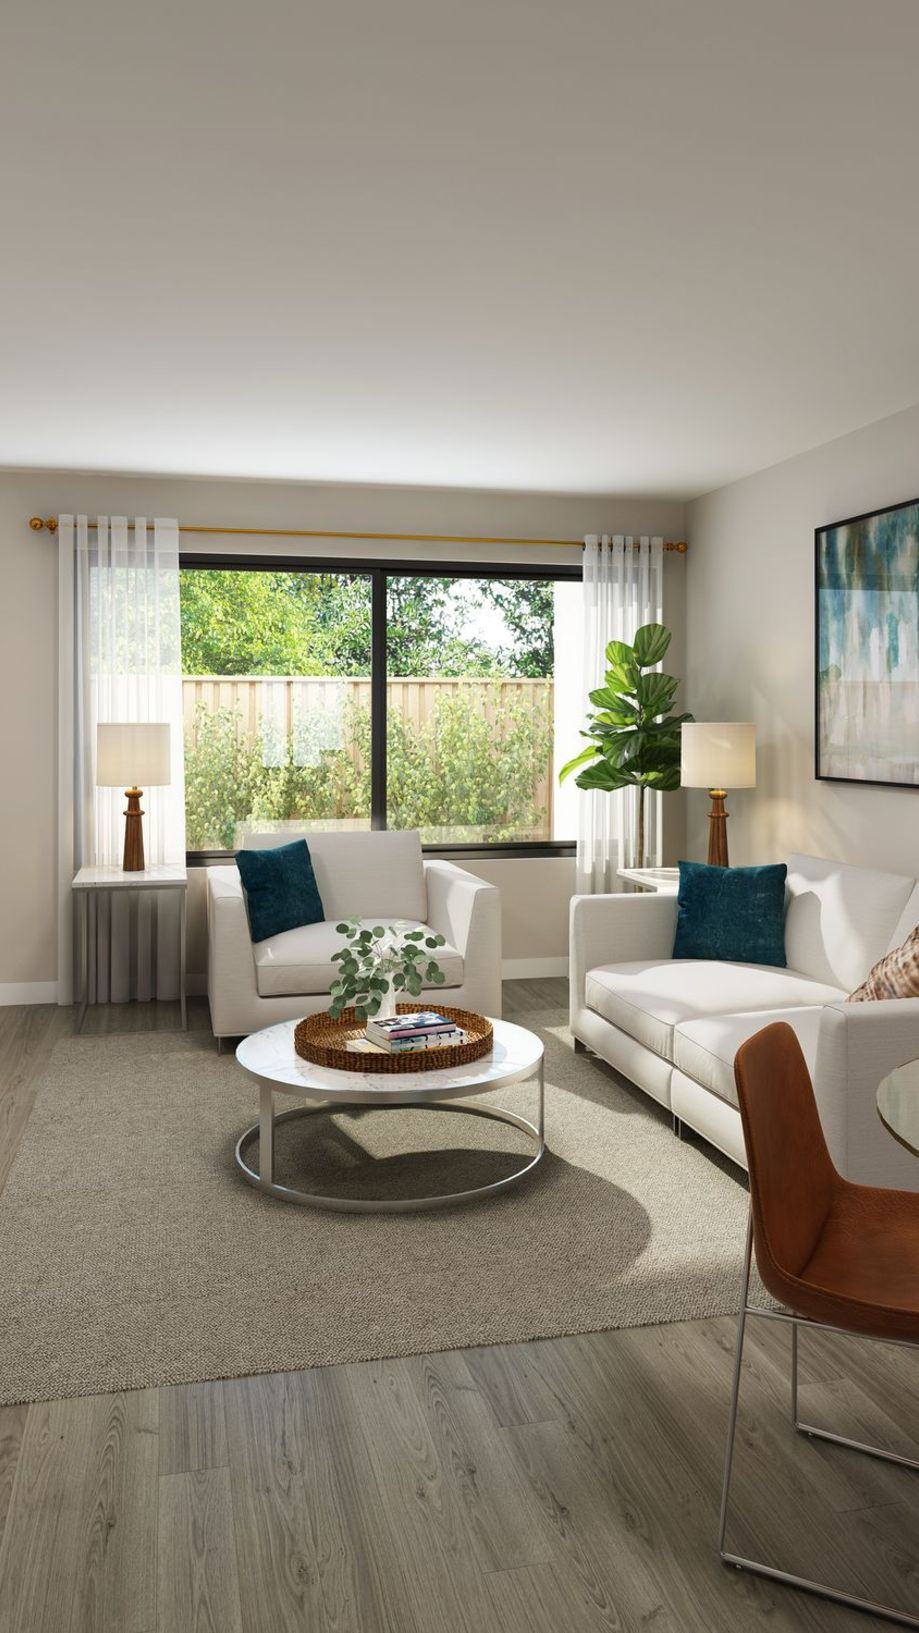 Tremendous Apartments For Rent In Brookline Ma Village At Brookline Download Free Architecture Designs Embacsunscenecom